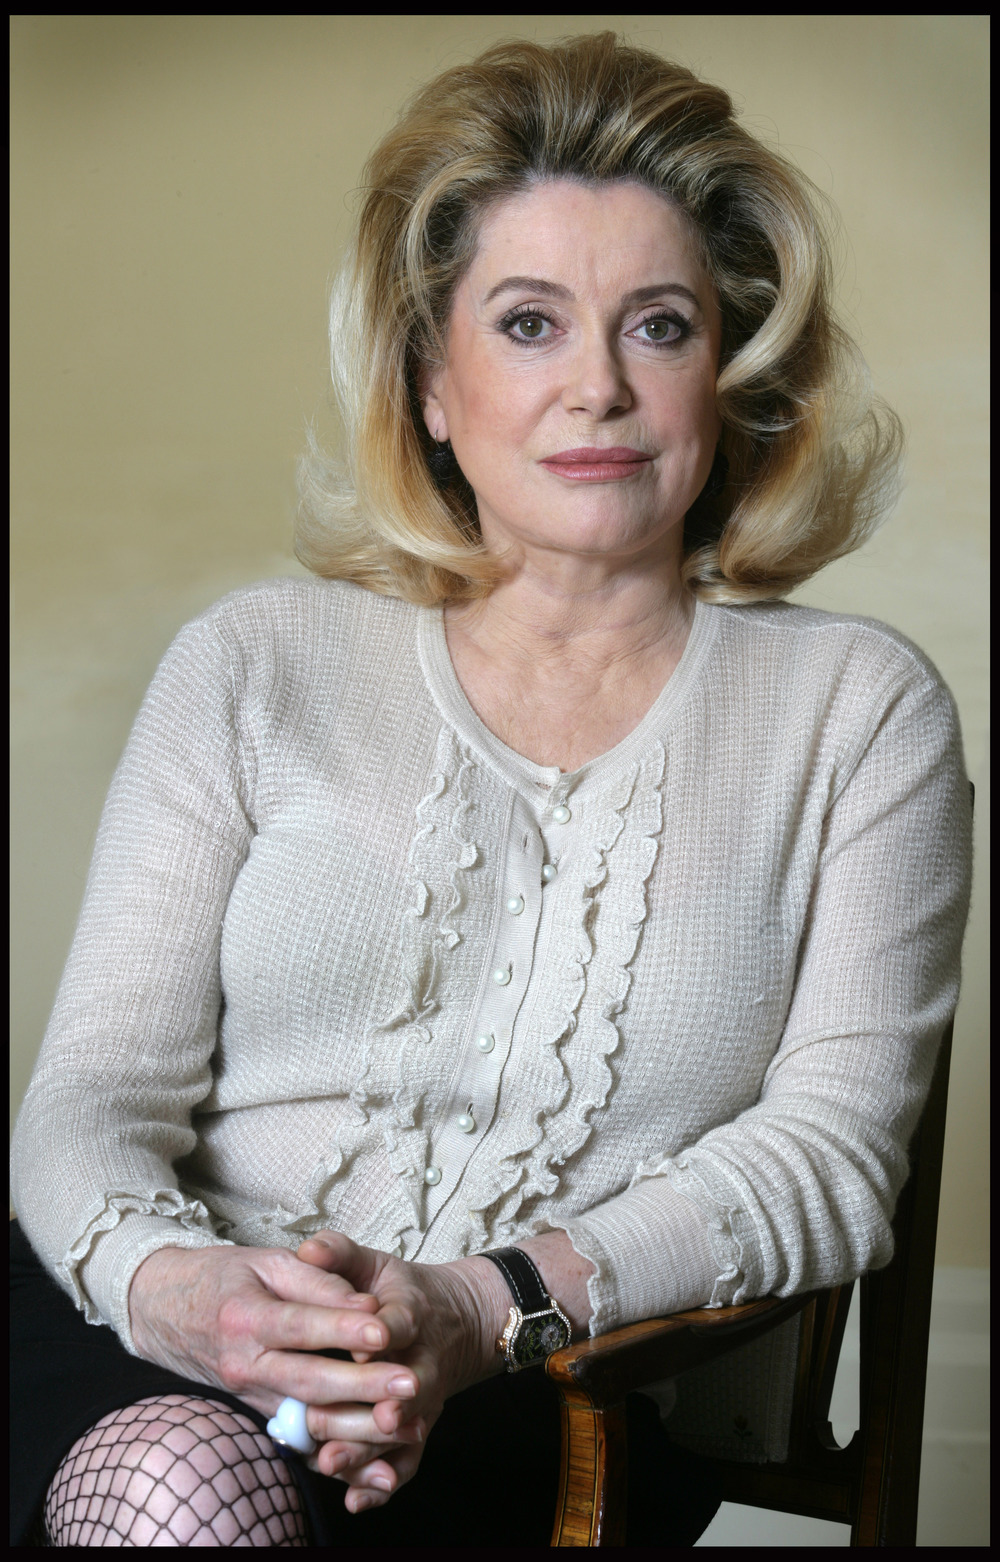 Catherine Deneuve, actress